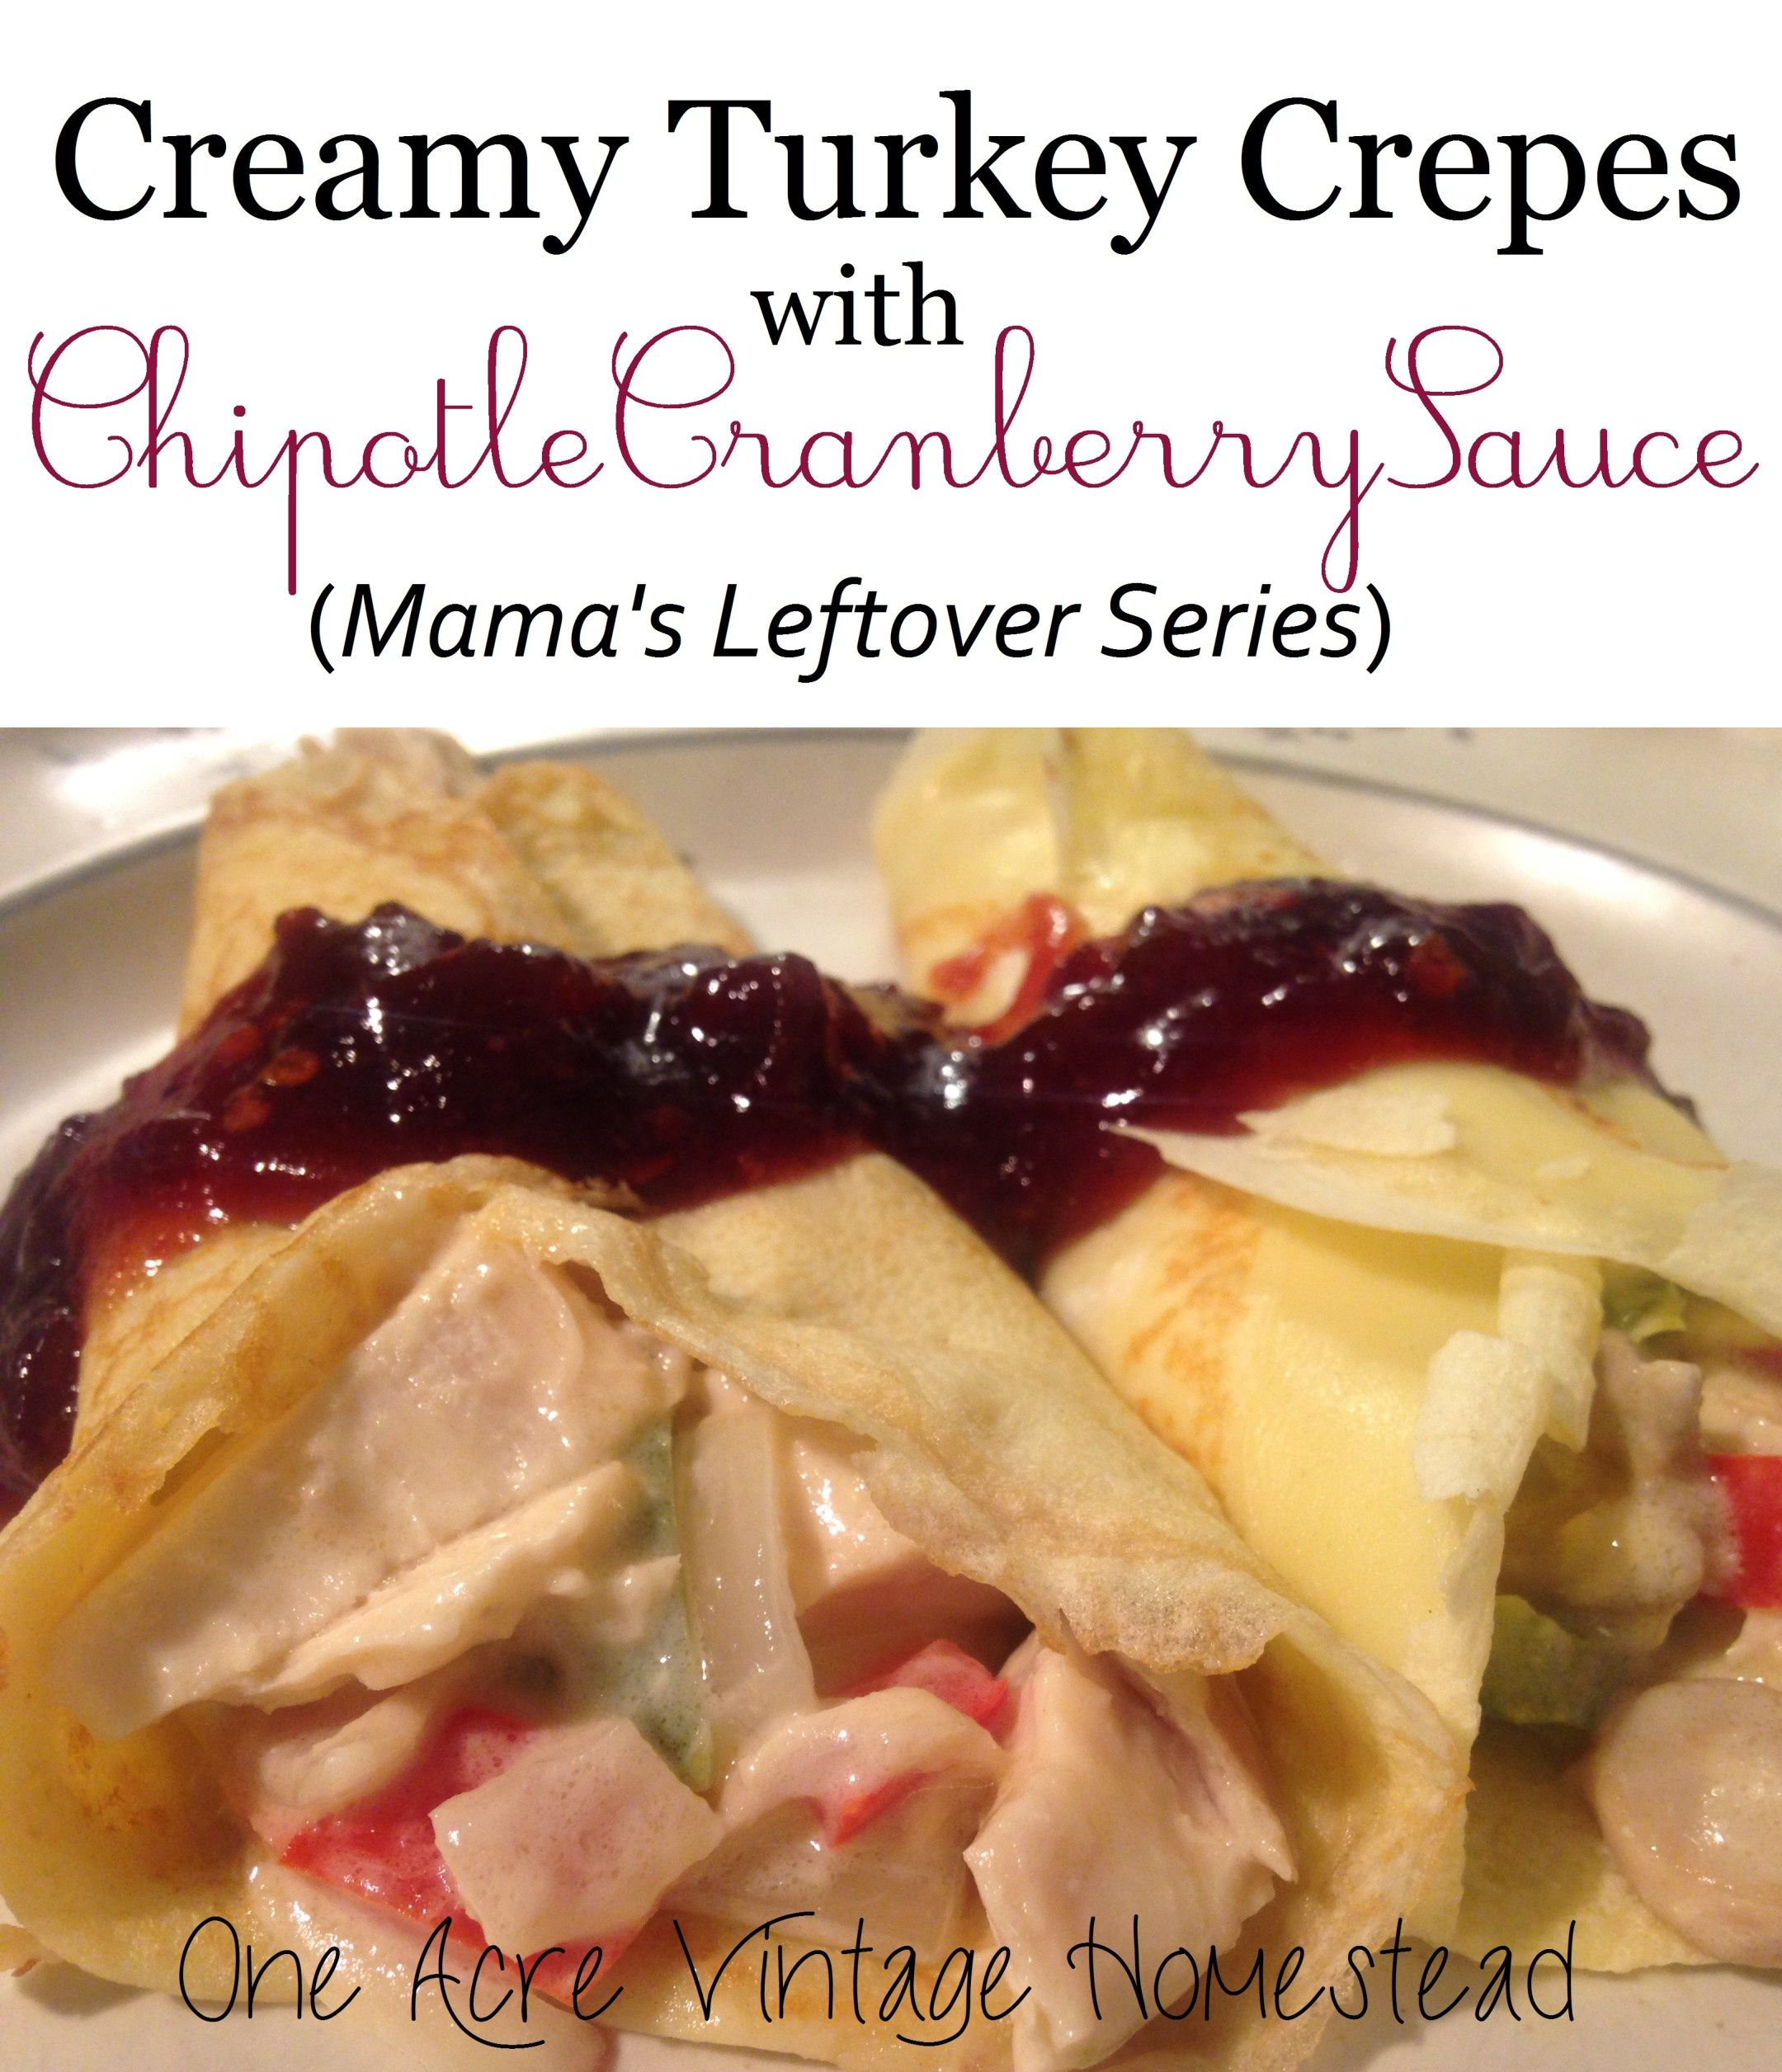 Turkey Crepes with Chipotle Cranberry Sauce #cranberrysauce